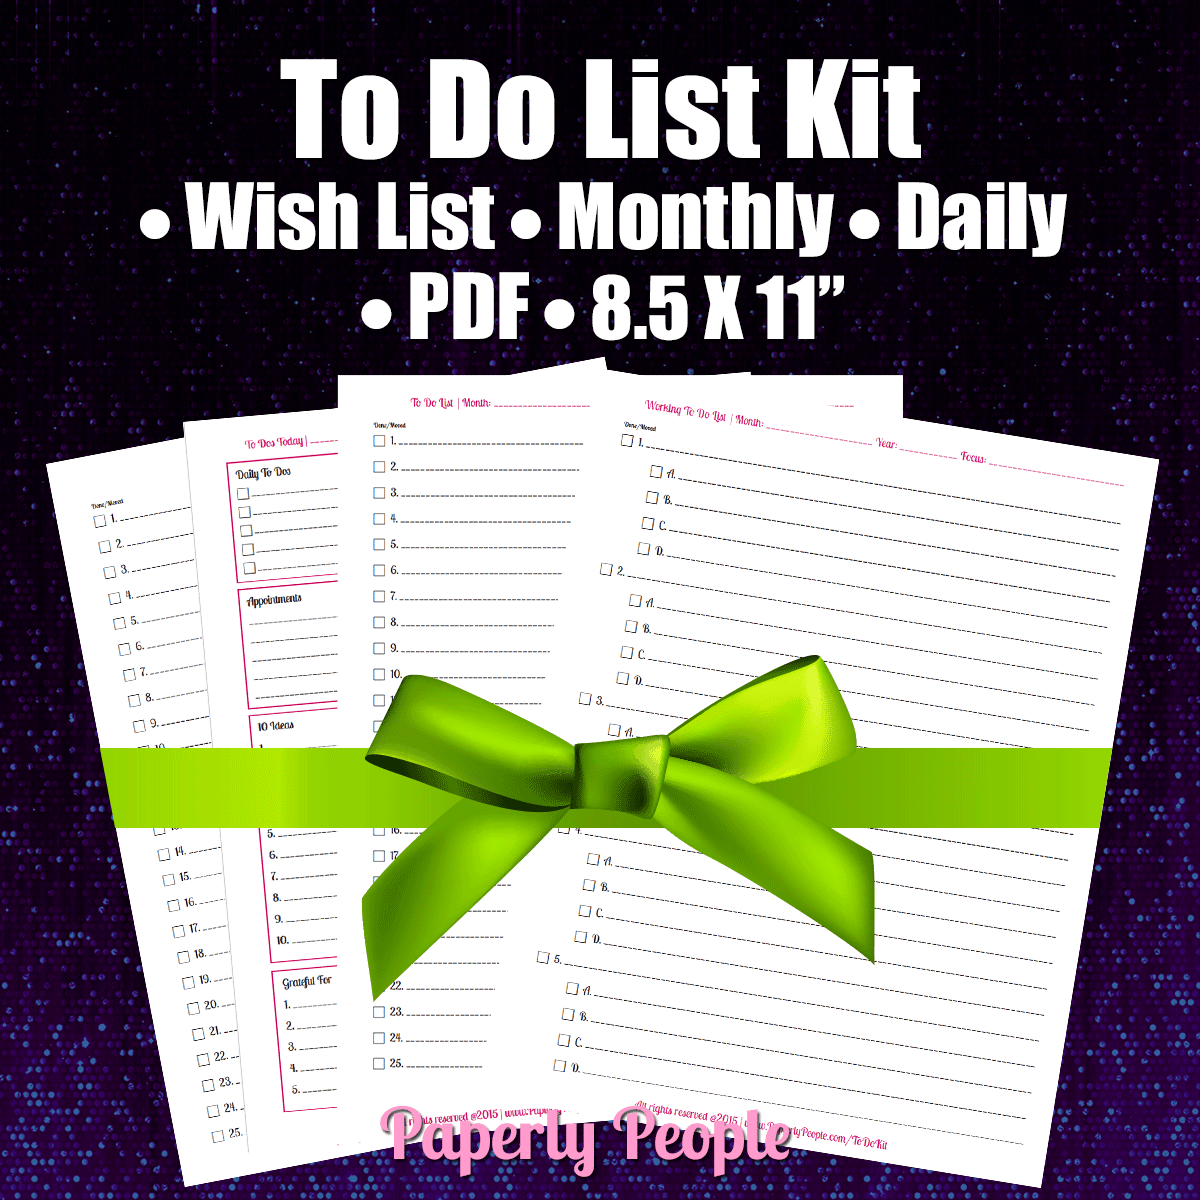 To Do List Kit - Paperly People